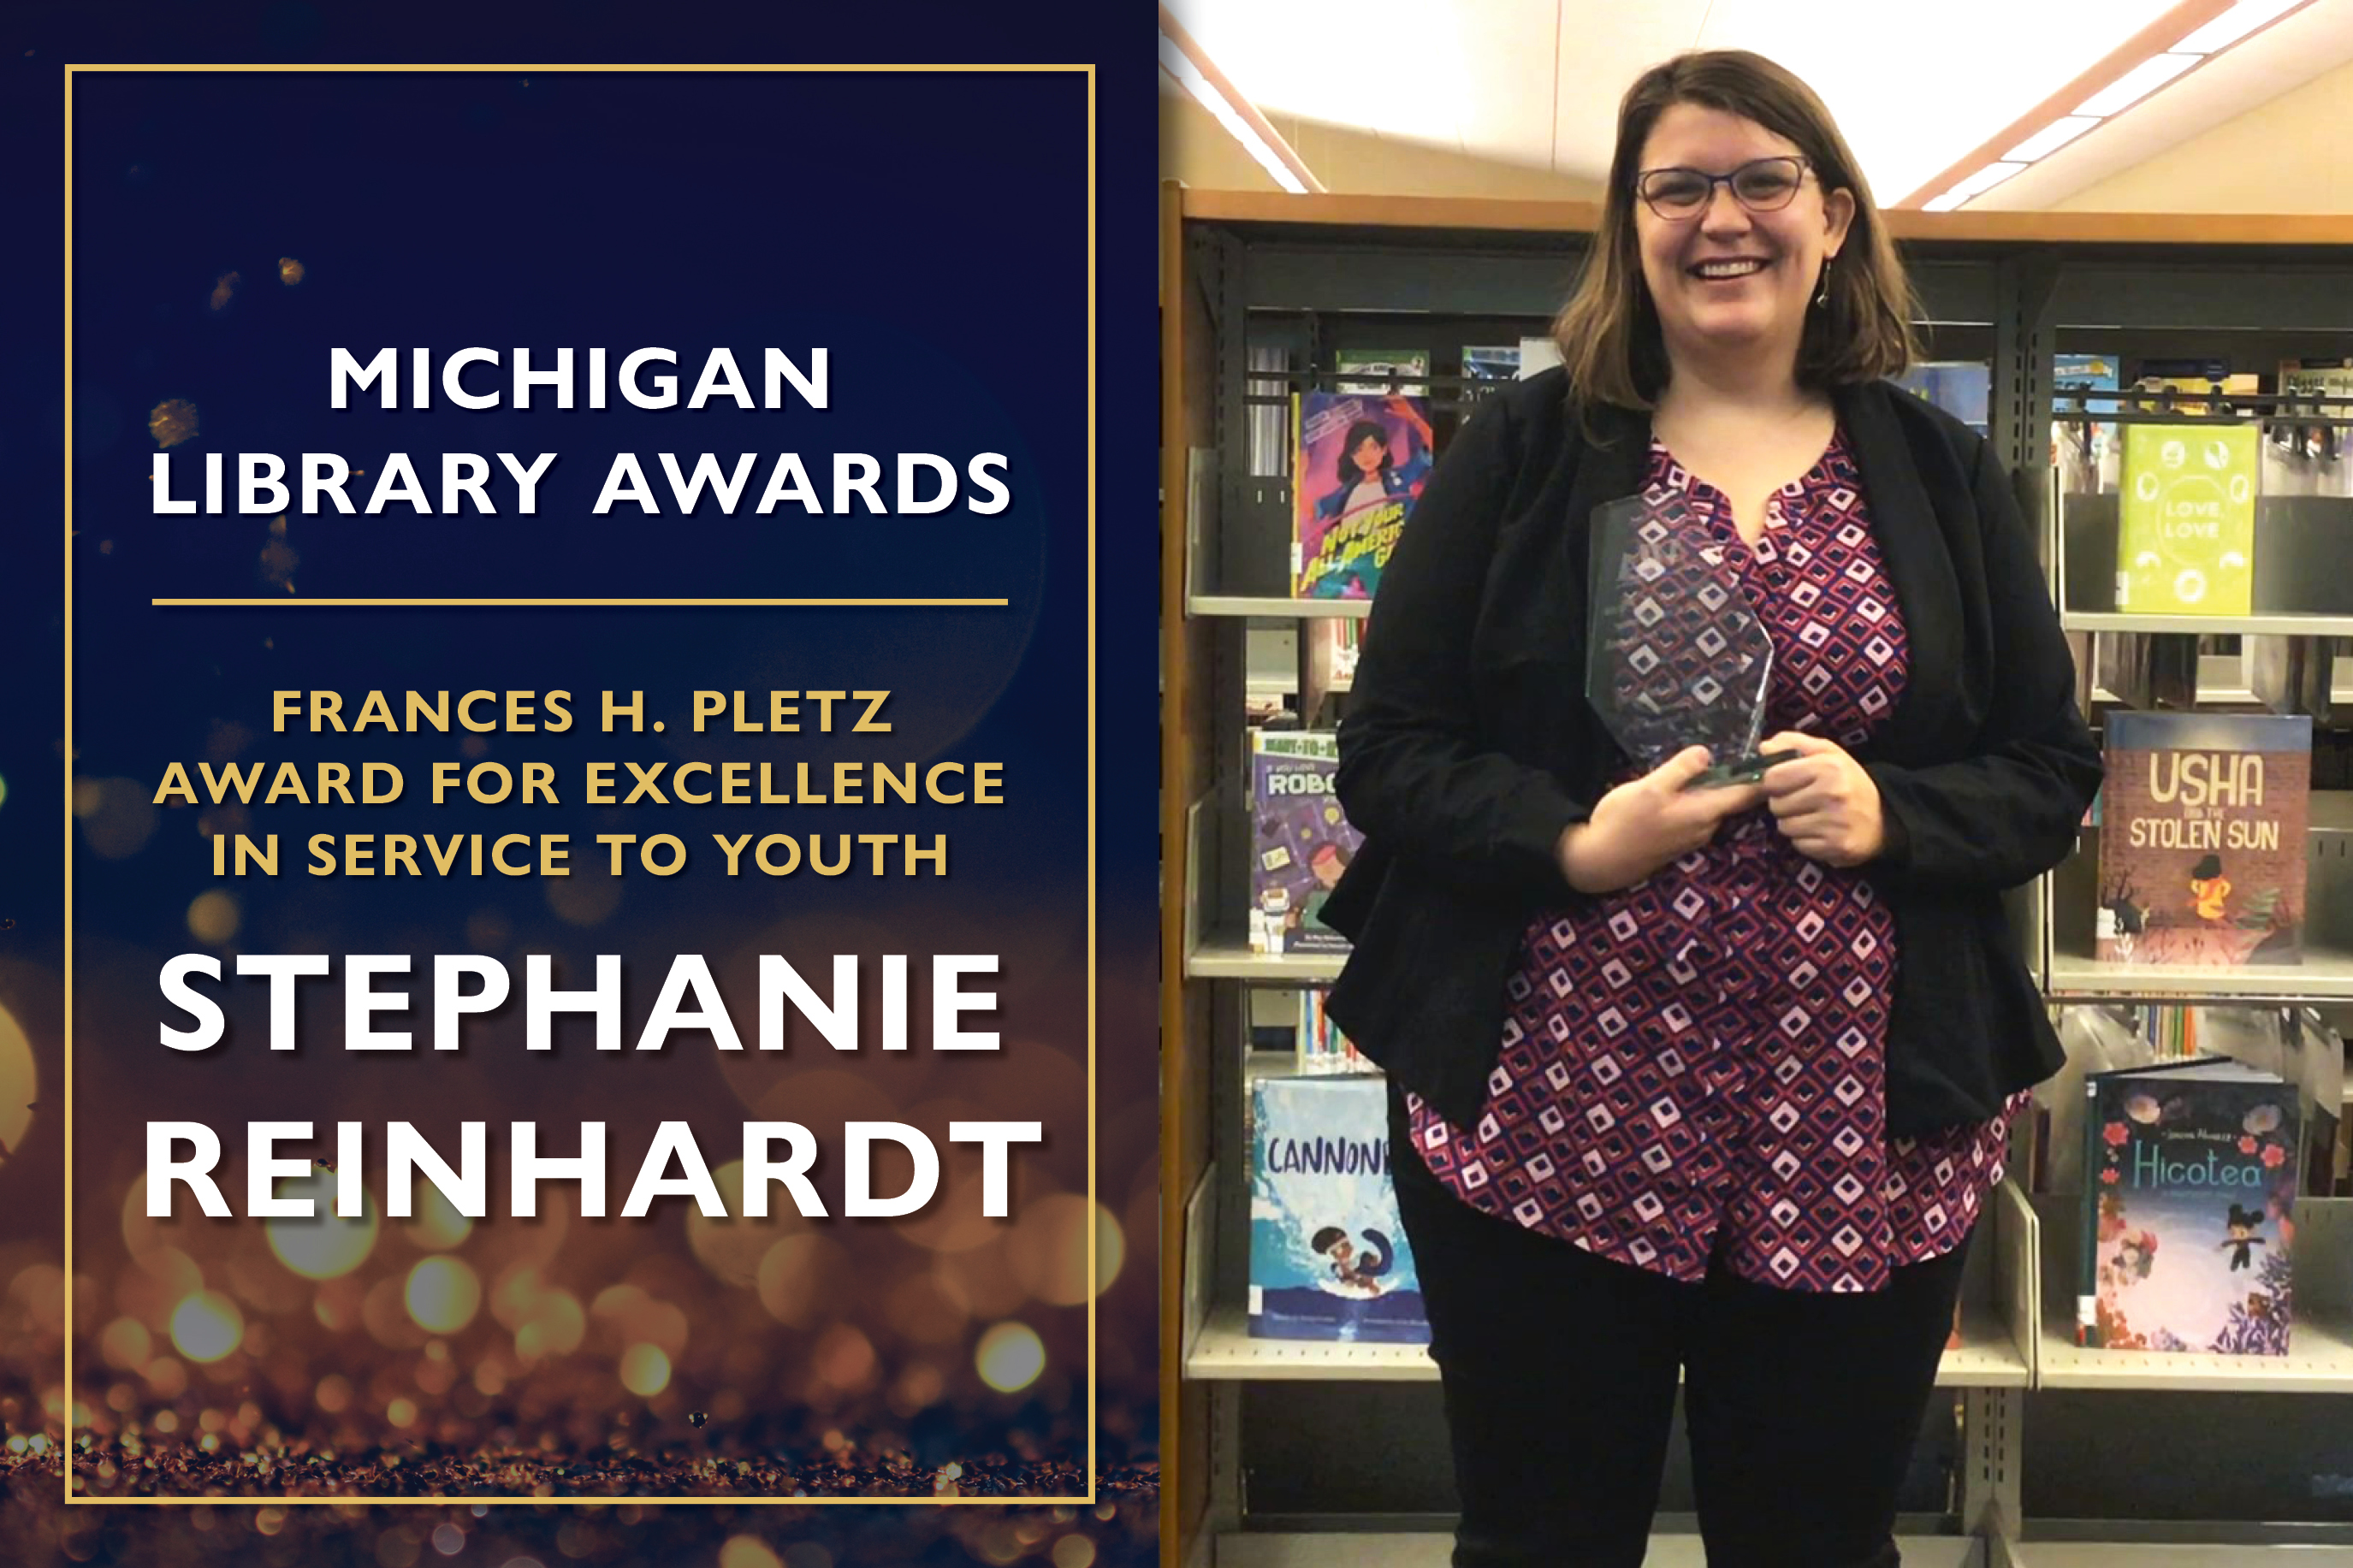 Frances H. Pletz Award for Excellence in Service To Youth  Stephanie Reinhardt, Librarian at the Auburn Area Branch Library, Bay County Library System